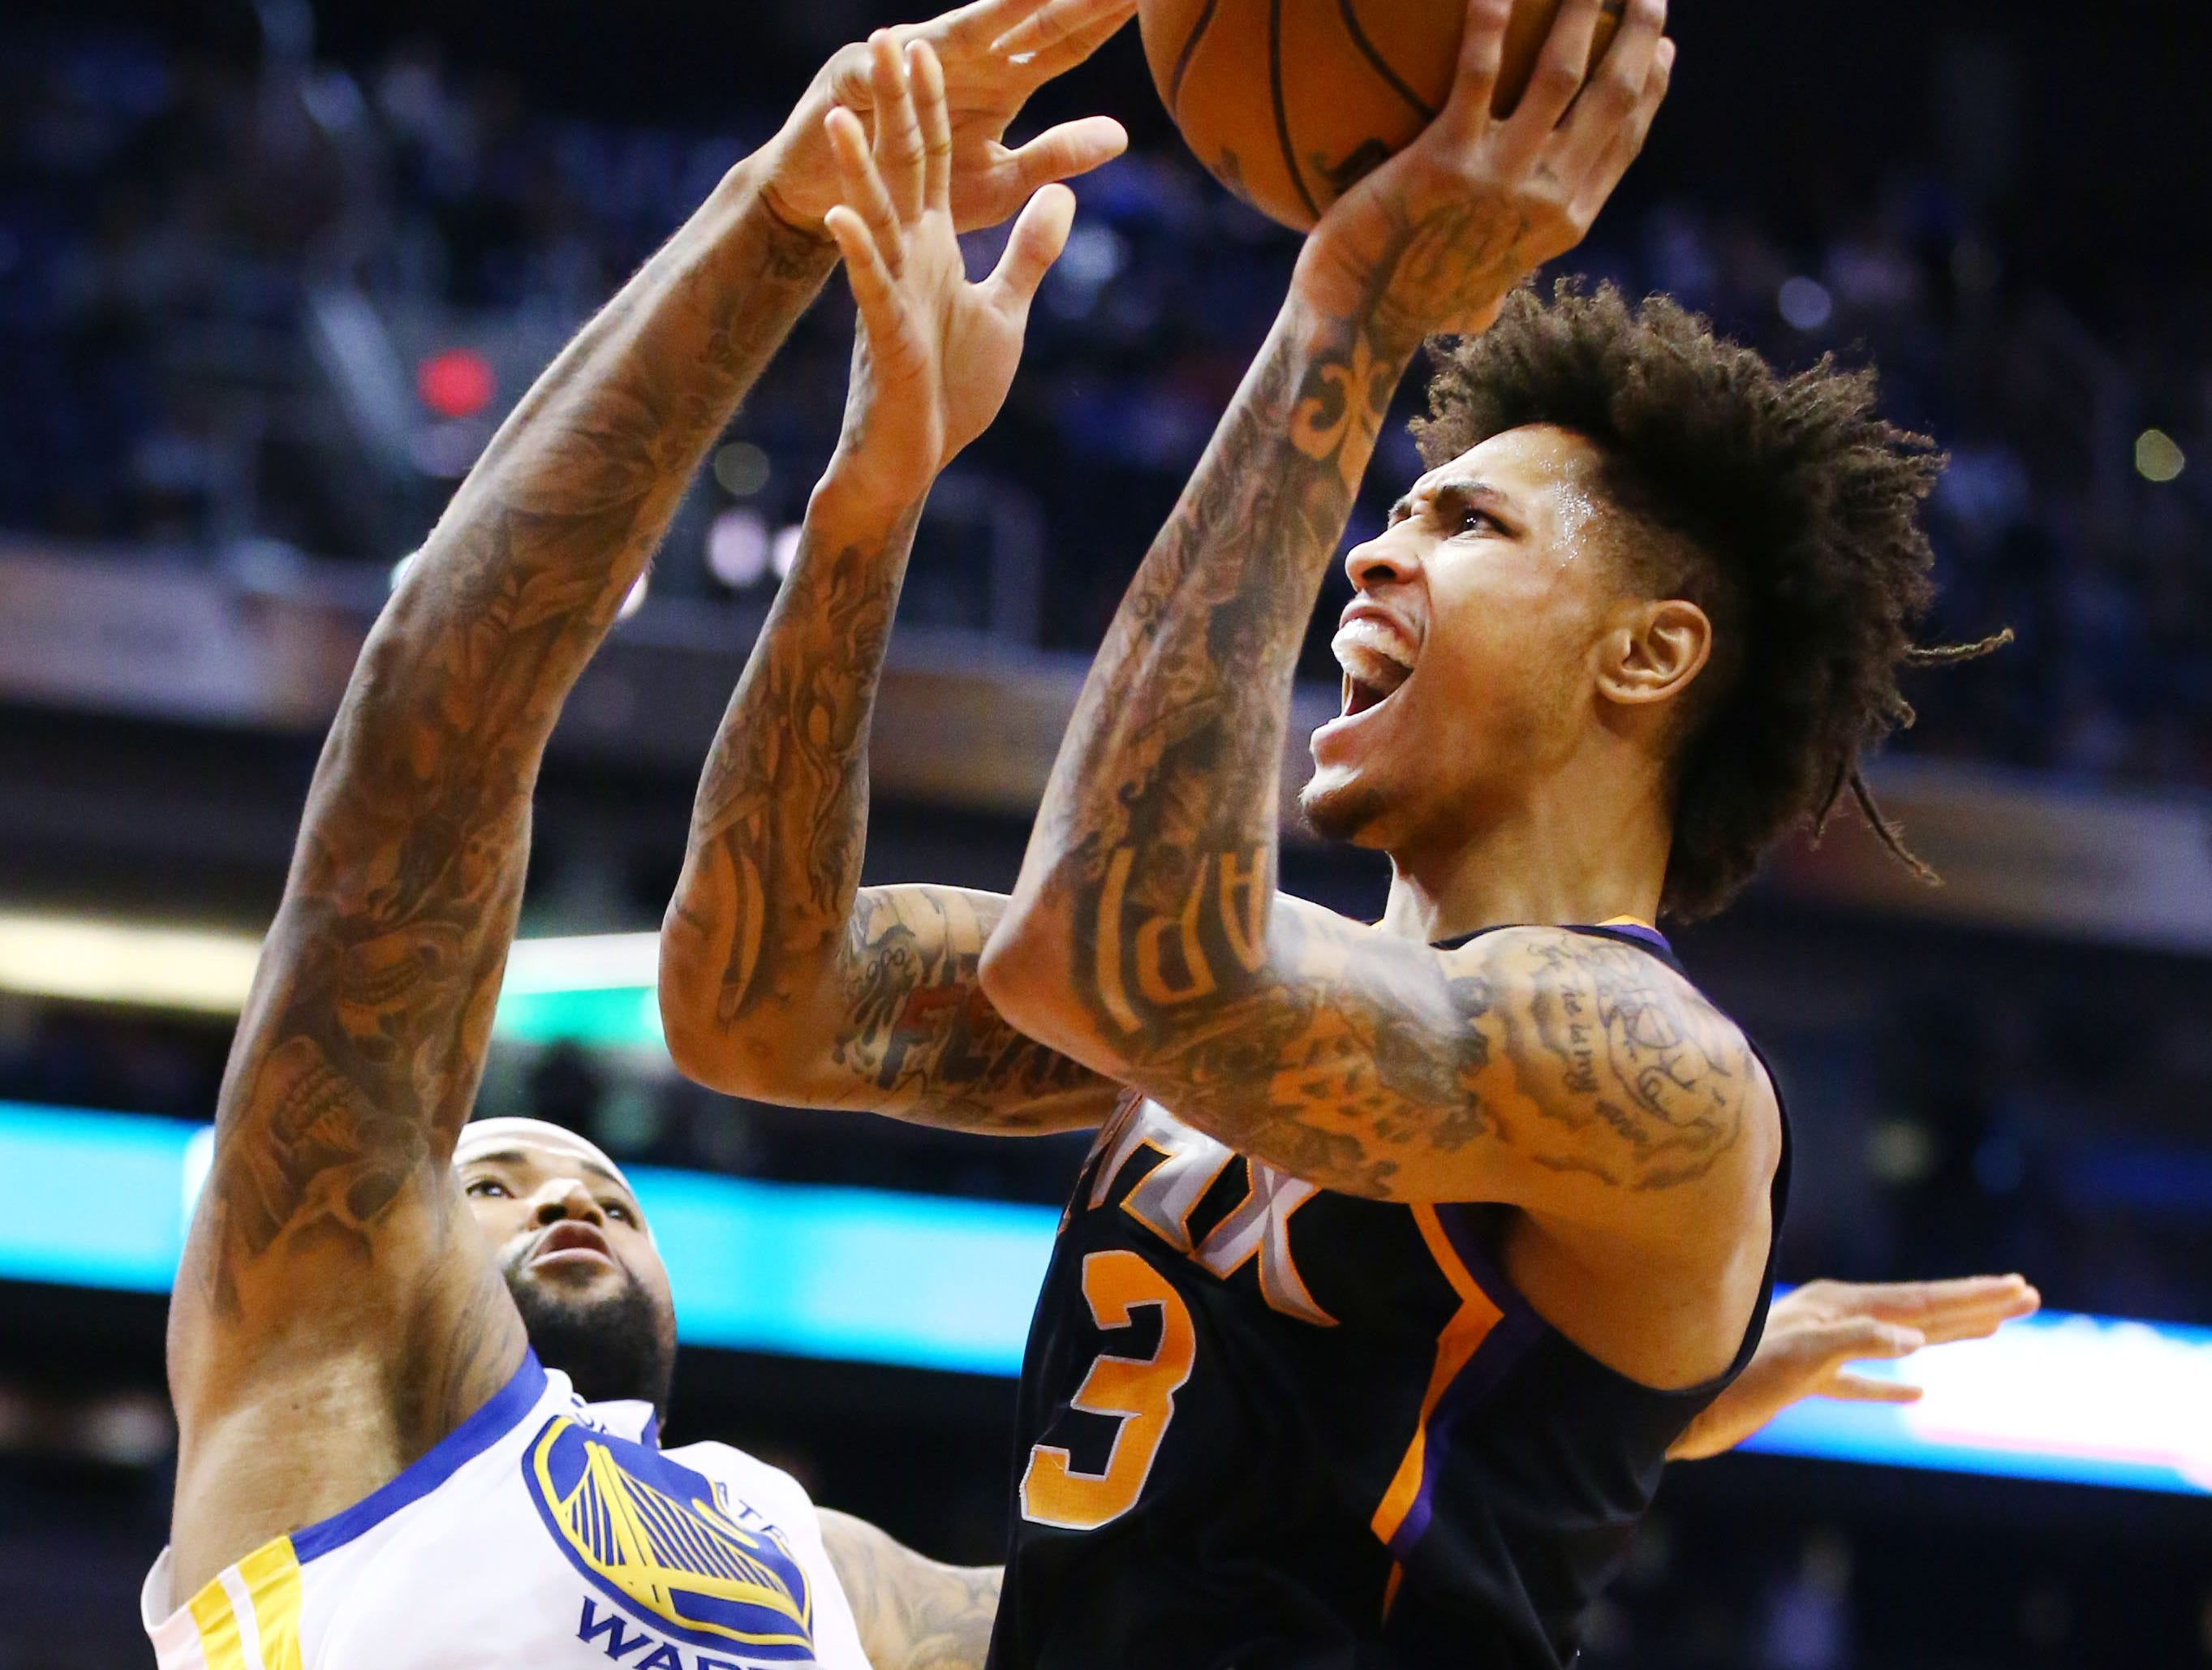 Phoenix Suns forward Kelly Oubre Jr. takes a shot against Golden State Warriors center DeMarcus Cousins in the first half on Feb. 8 at Talking Stick Resort Arena.